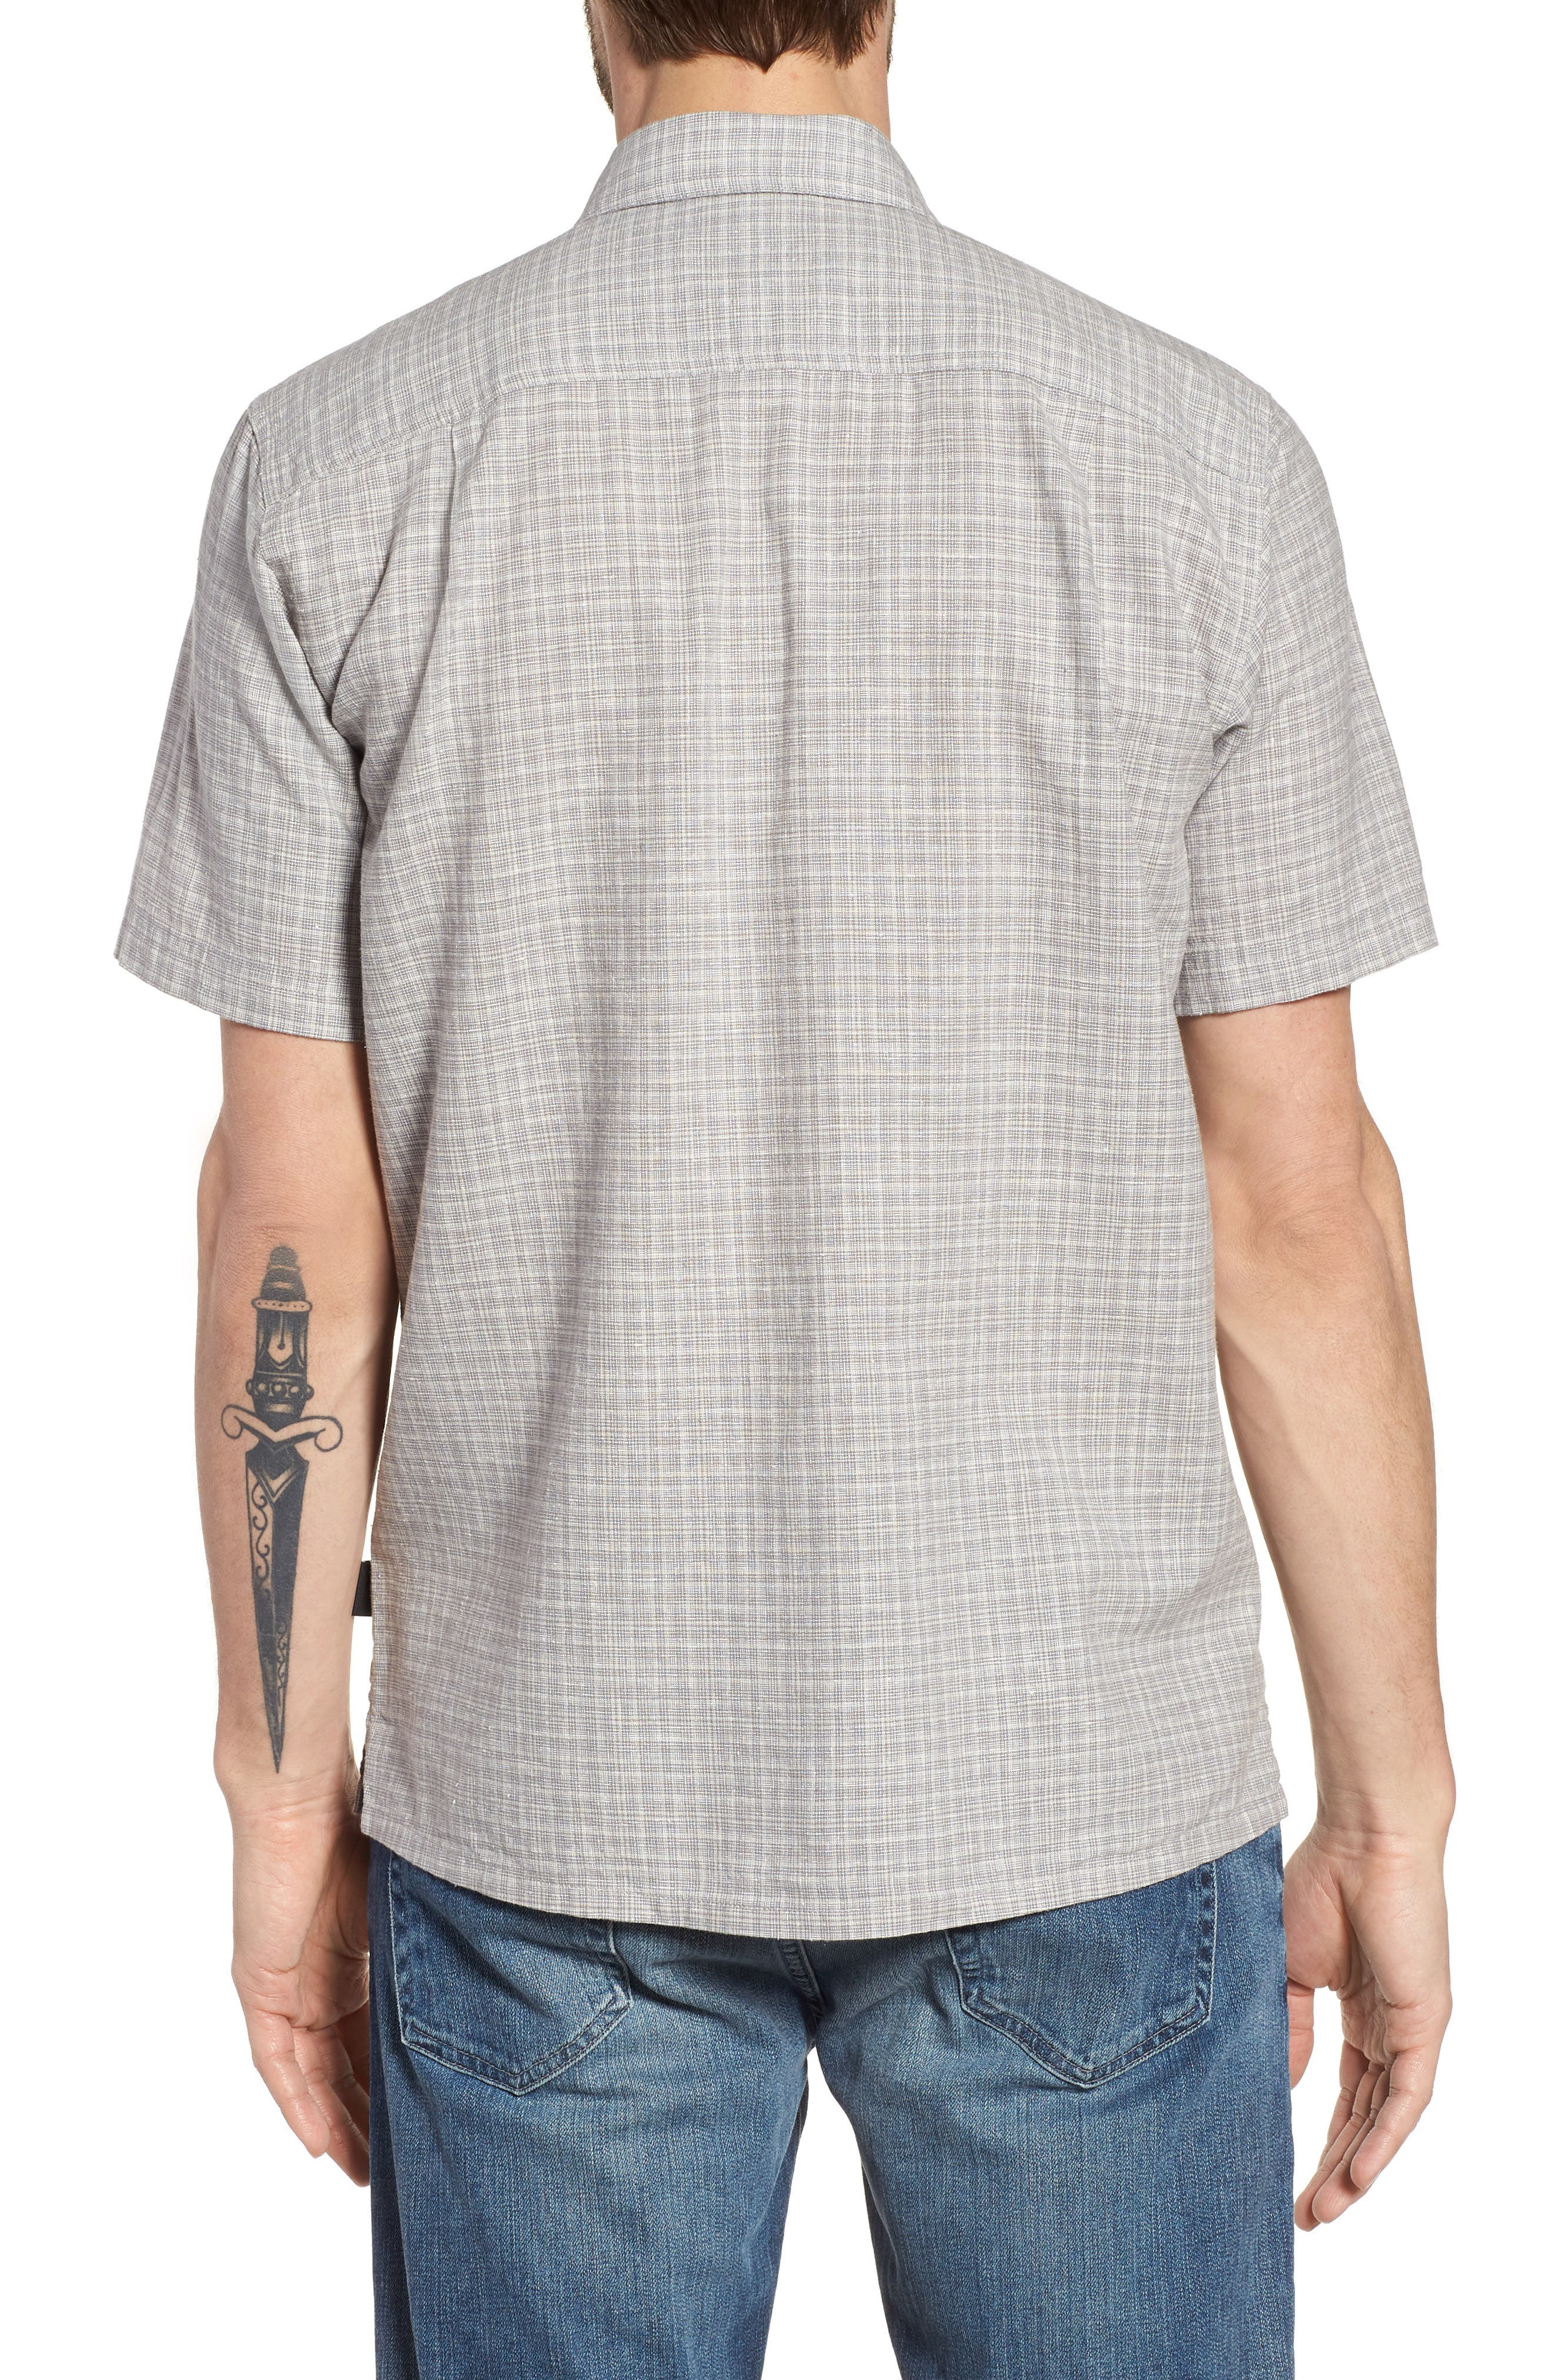 'Back Step' Regular Fit Check Short Sleeve Sport Shirt,                             Alternate thumbnail 3, color,                             Tino/ Feather Grey